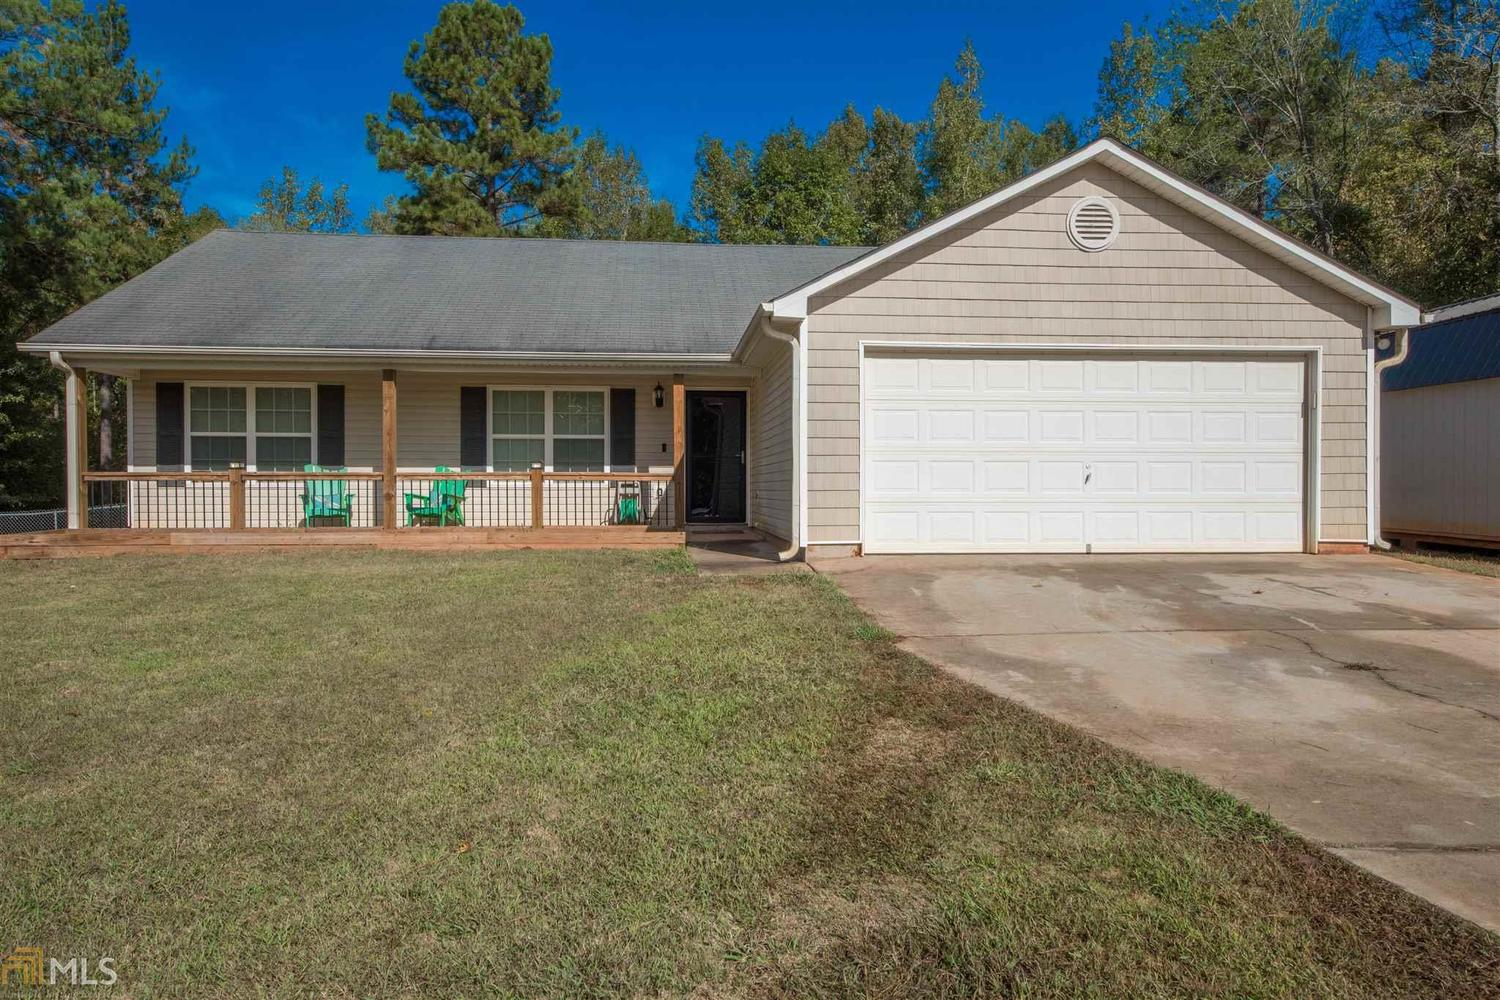 239 Glazier Farms Way Senoia, GA 30276